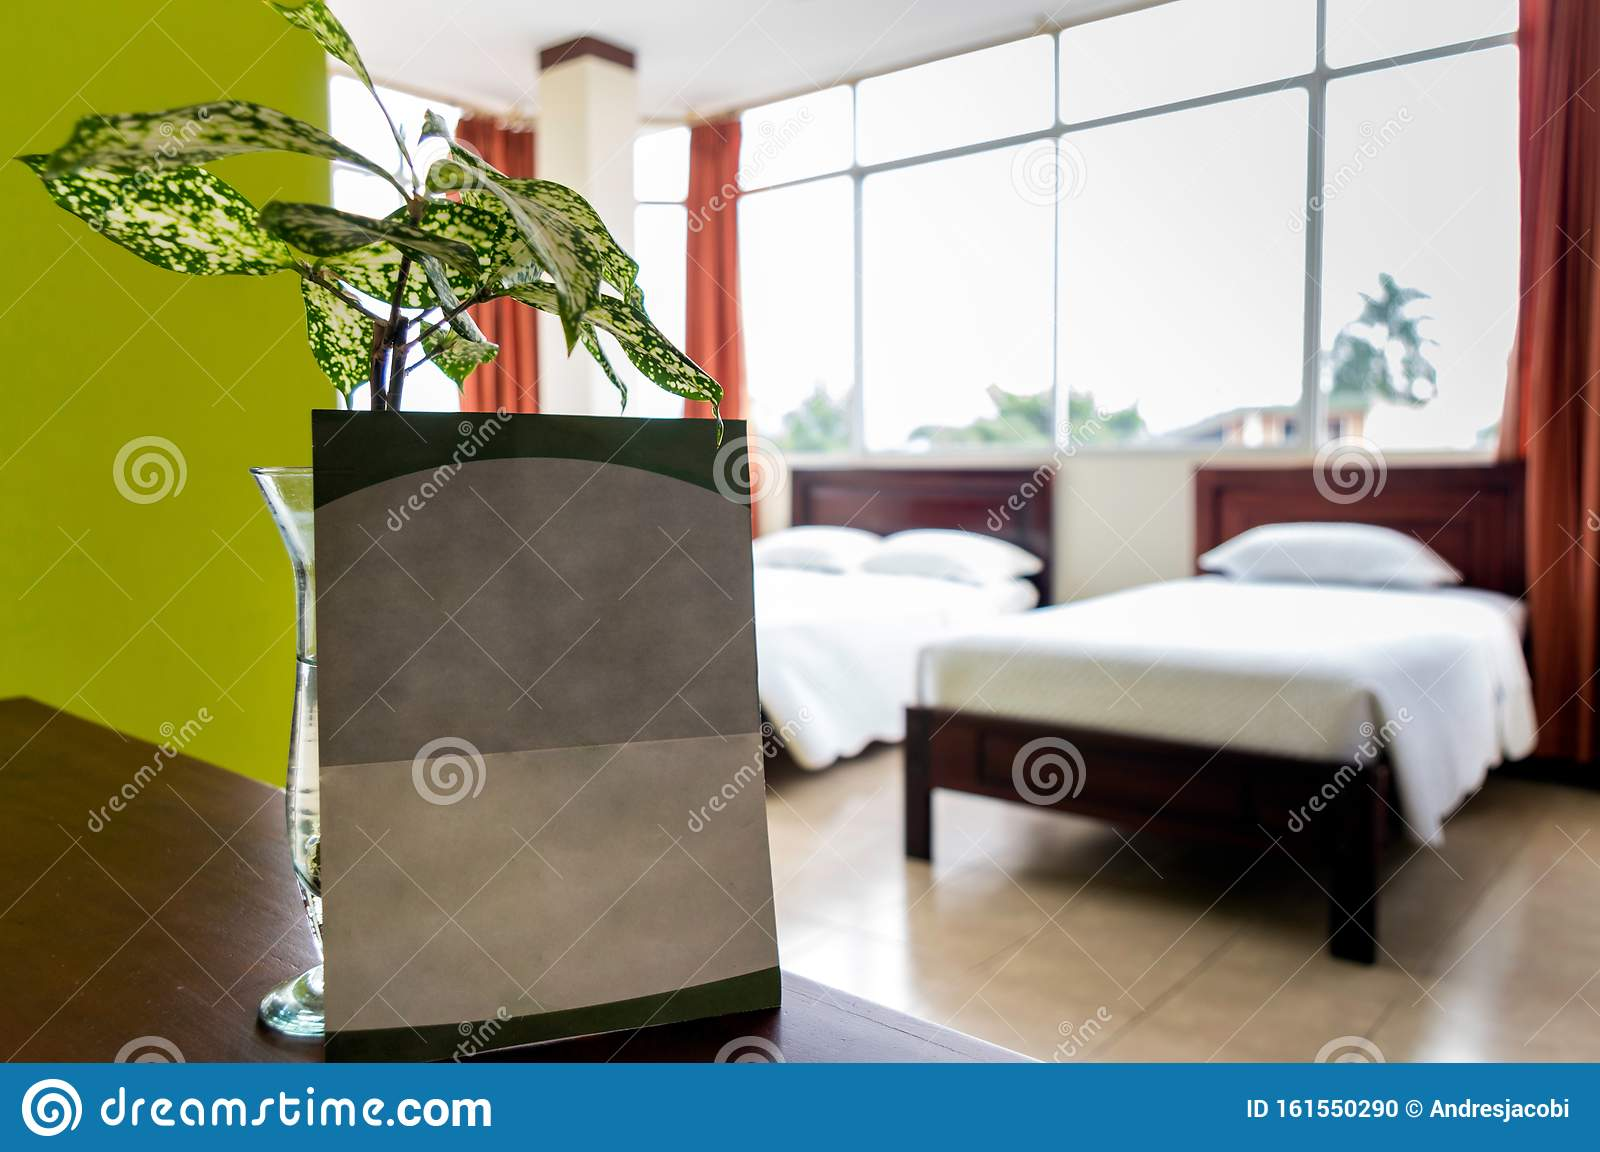 Blank Advertising Poster Inside A Hotel Room. Stock Photo ...